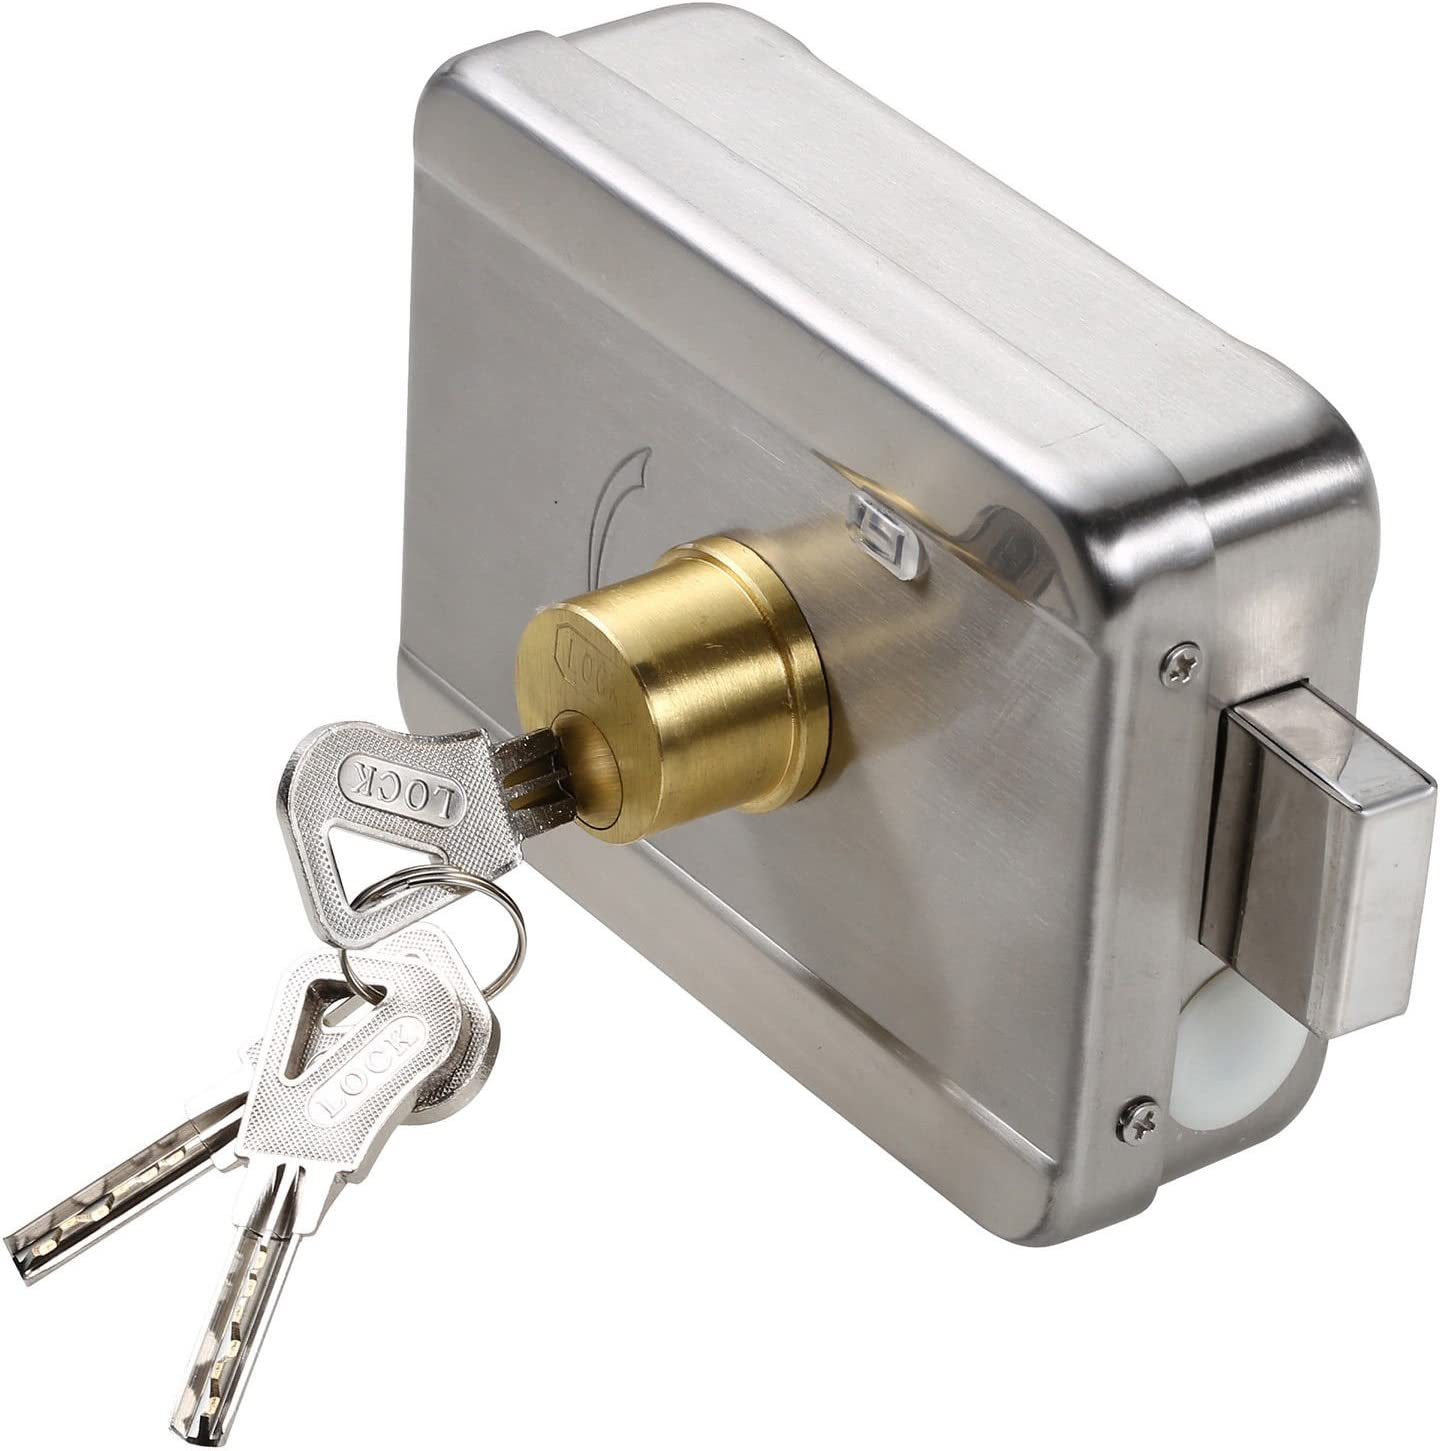 Silent Safe Intelligent Motor Electric Lock W/signal Self-closing Lockable Home Improvement